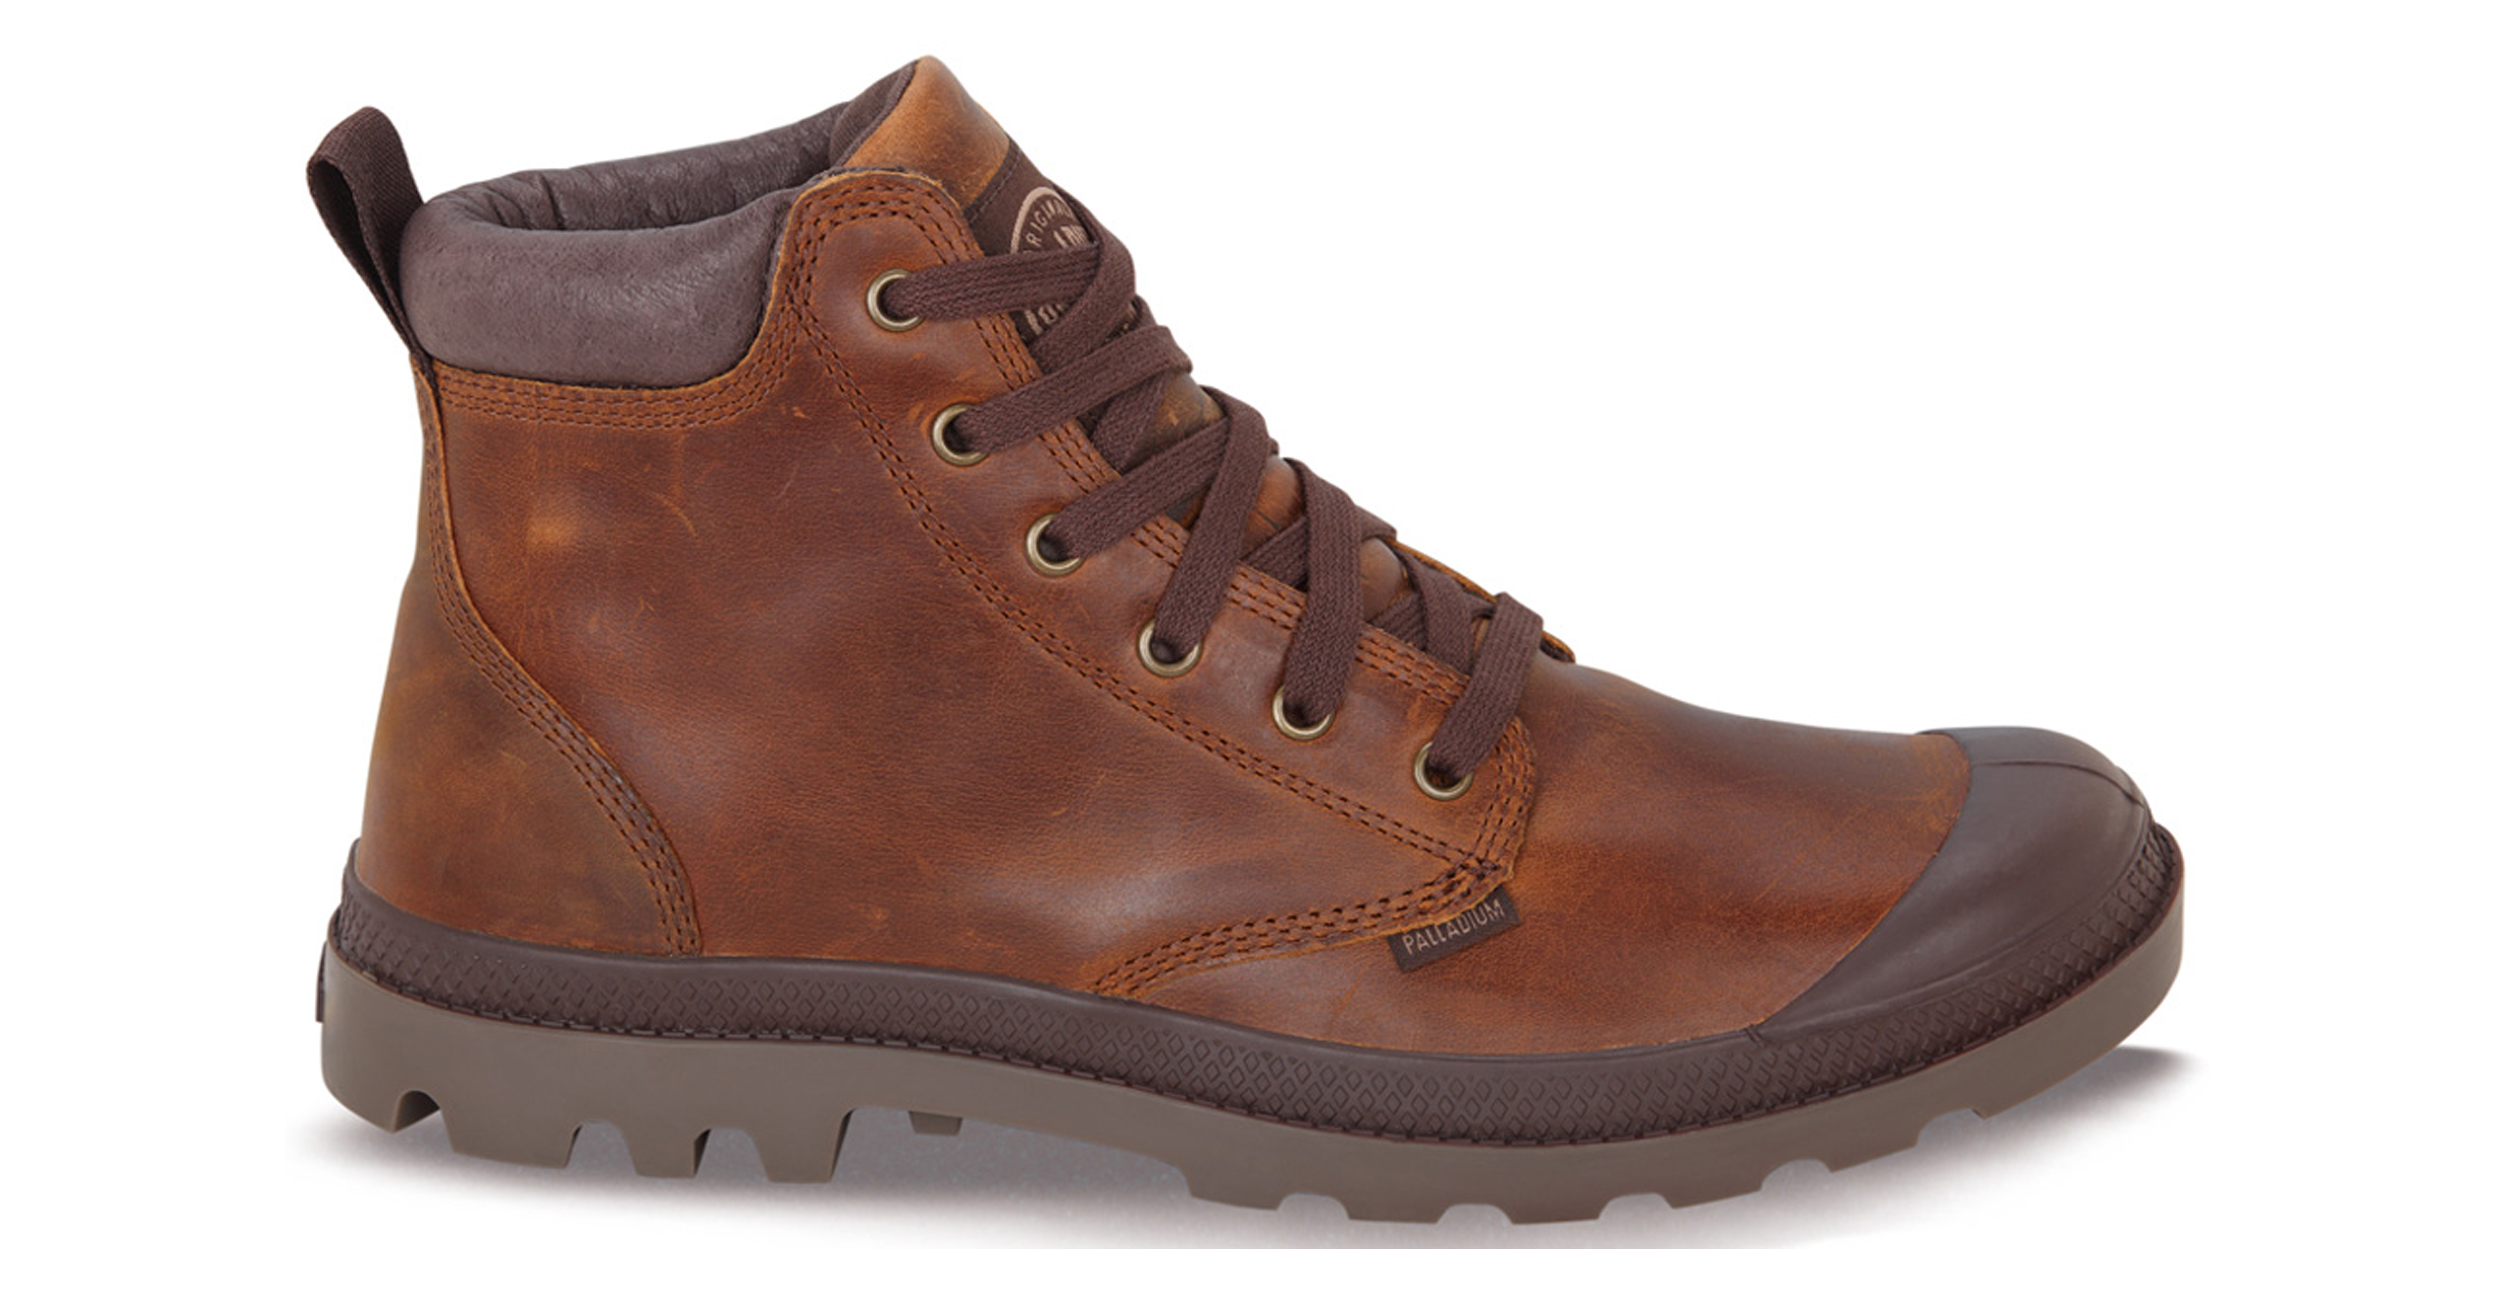 Palladium Mens Shoes Pampa Hi Cuff Lea New Leather Lace Up Walking Ankle Boots